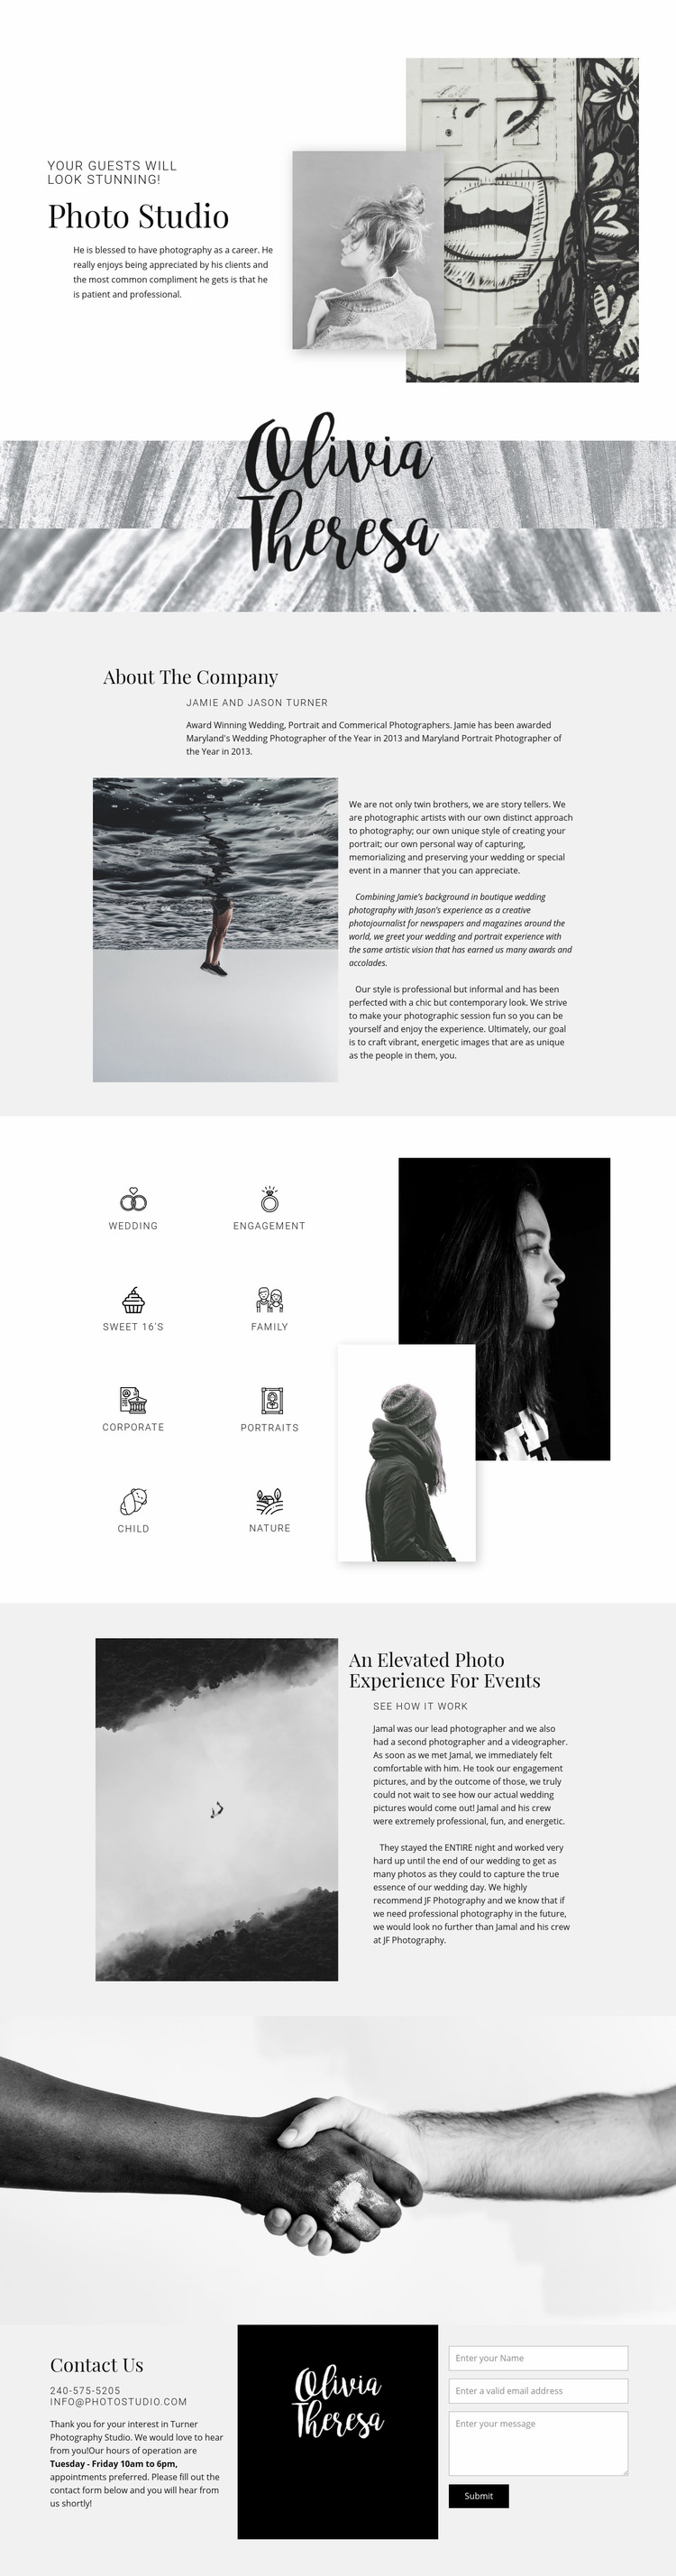 Ideas brought to live art Web Page Design